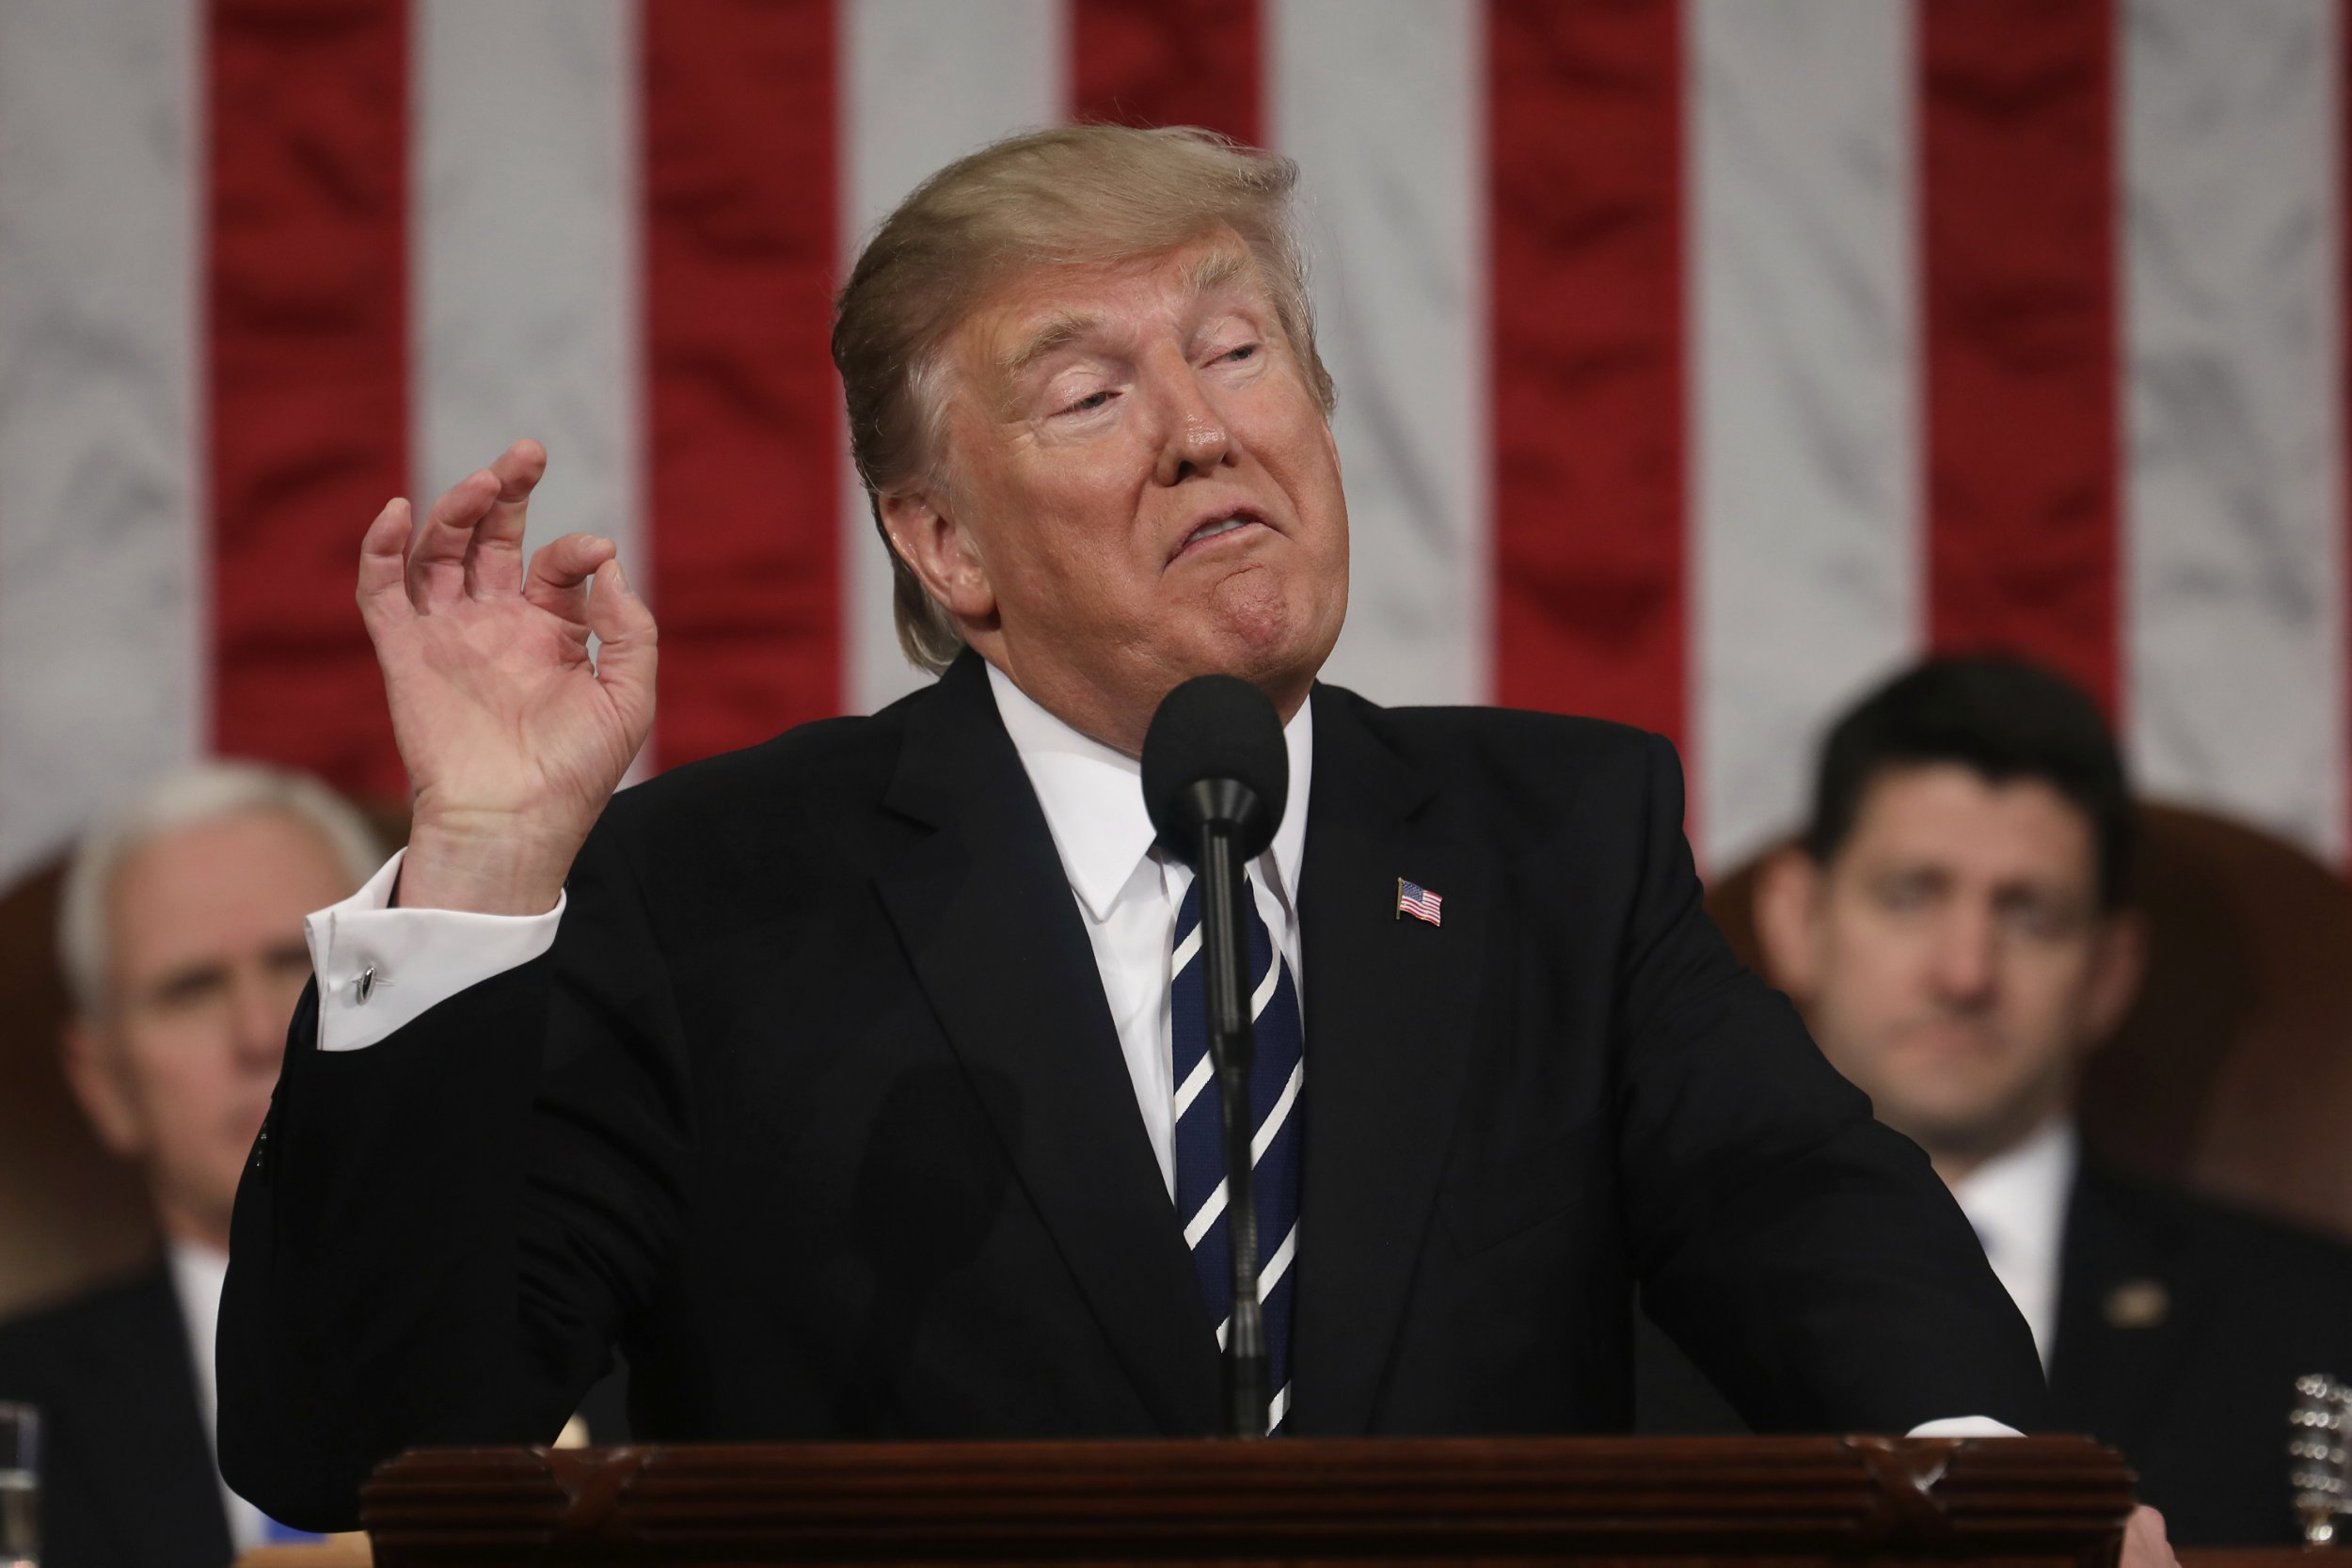 President Donald Trump addresses a joint session of Congress on Capitol Hill in Washington, Tuesday, Feb. 28, 2017. (Jim Lo Scalzo/Pool Image via AP)